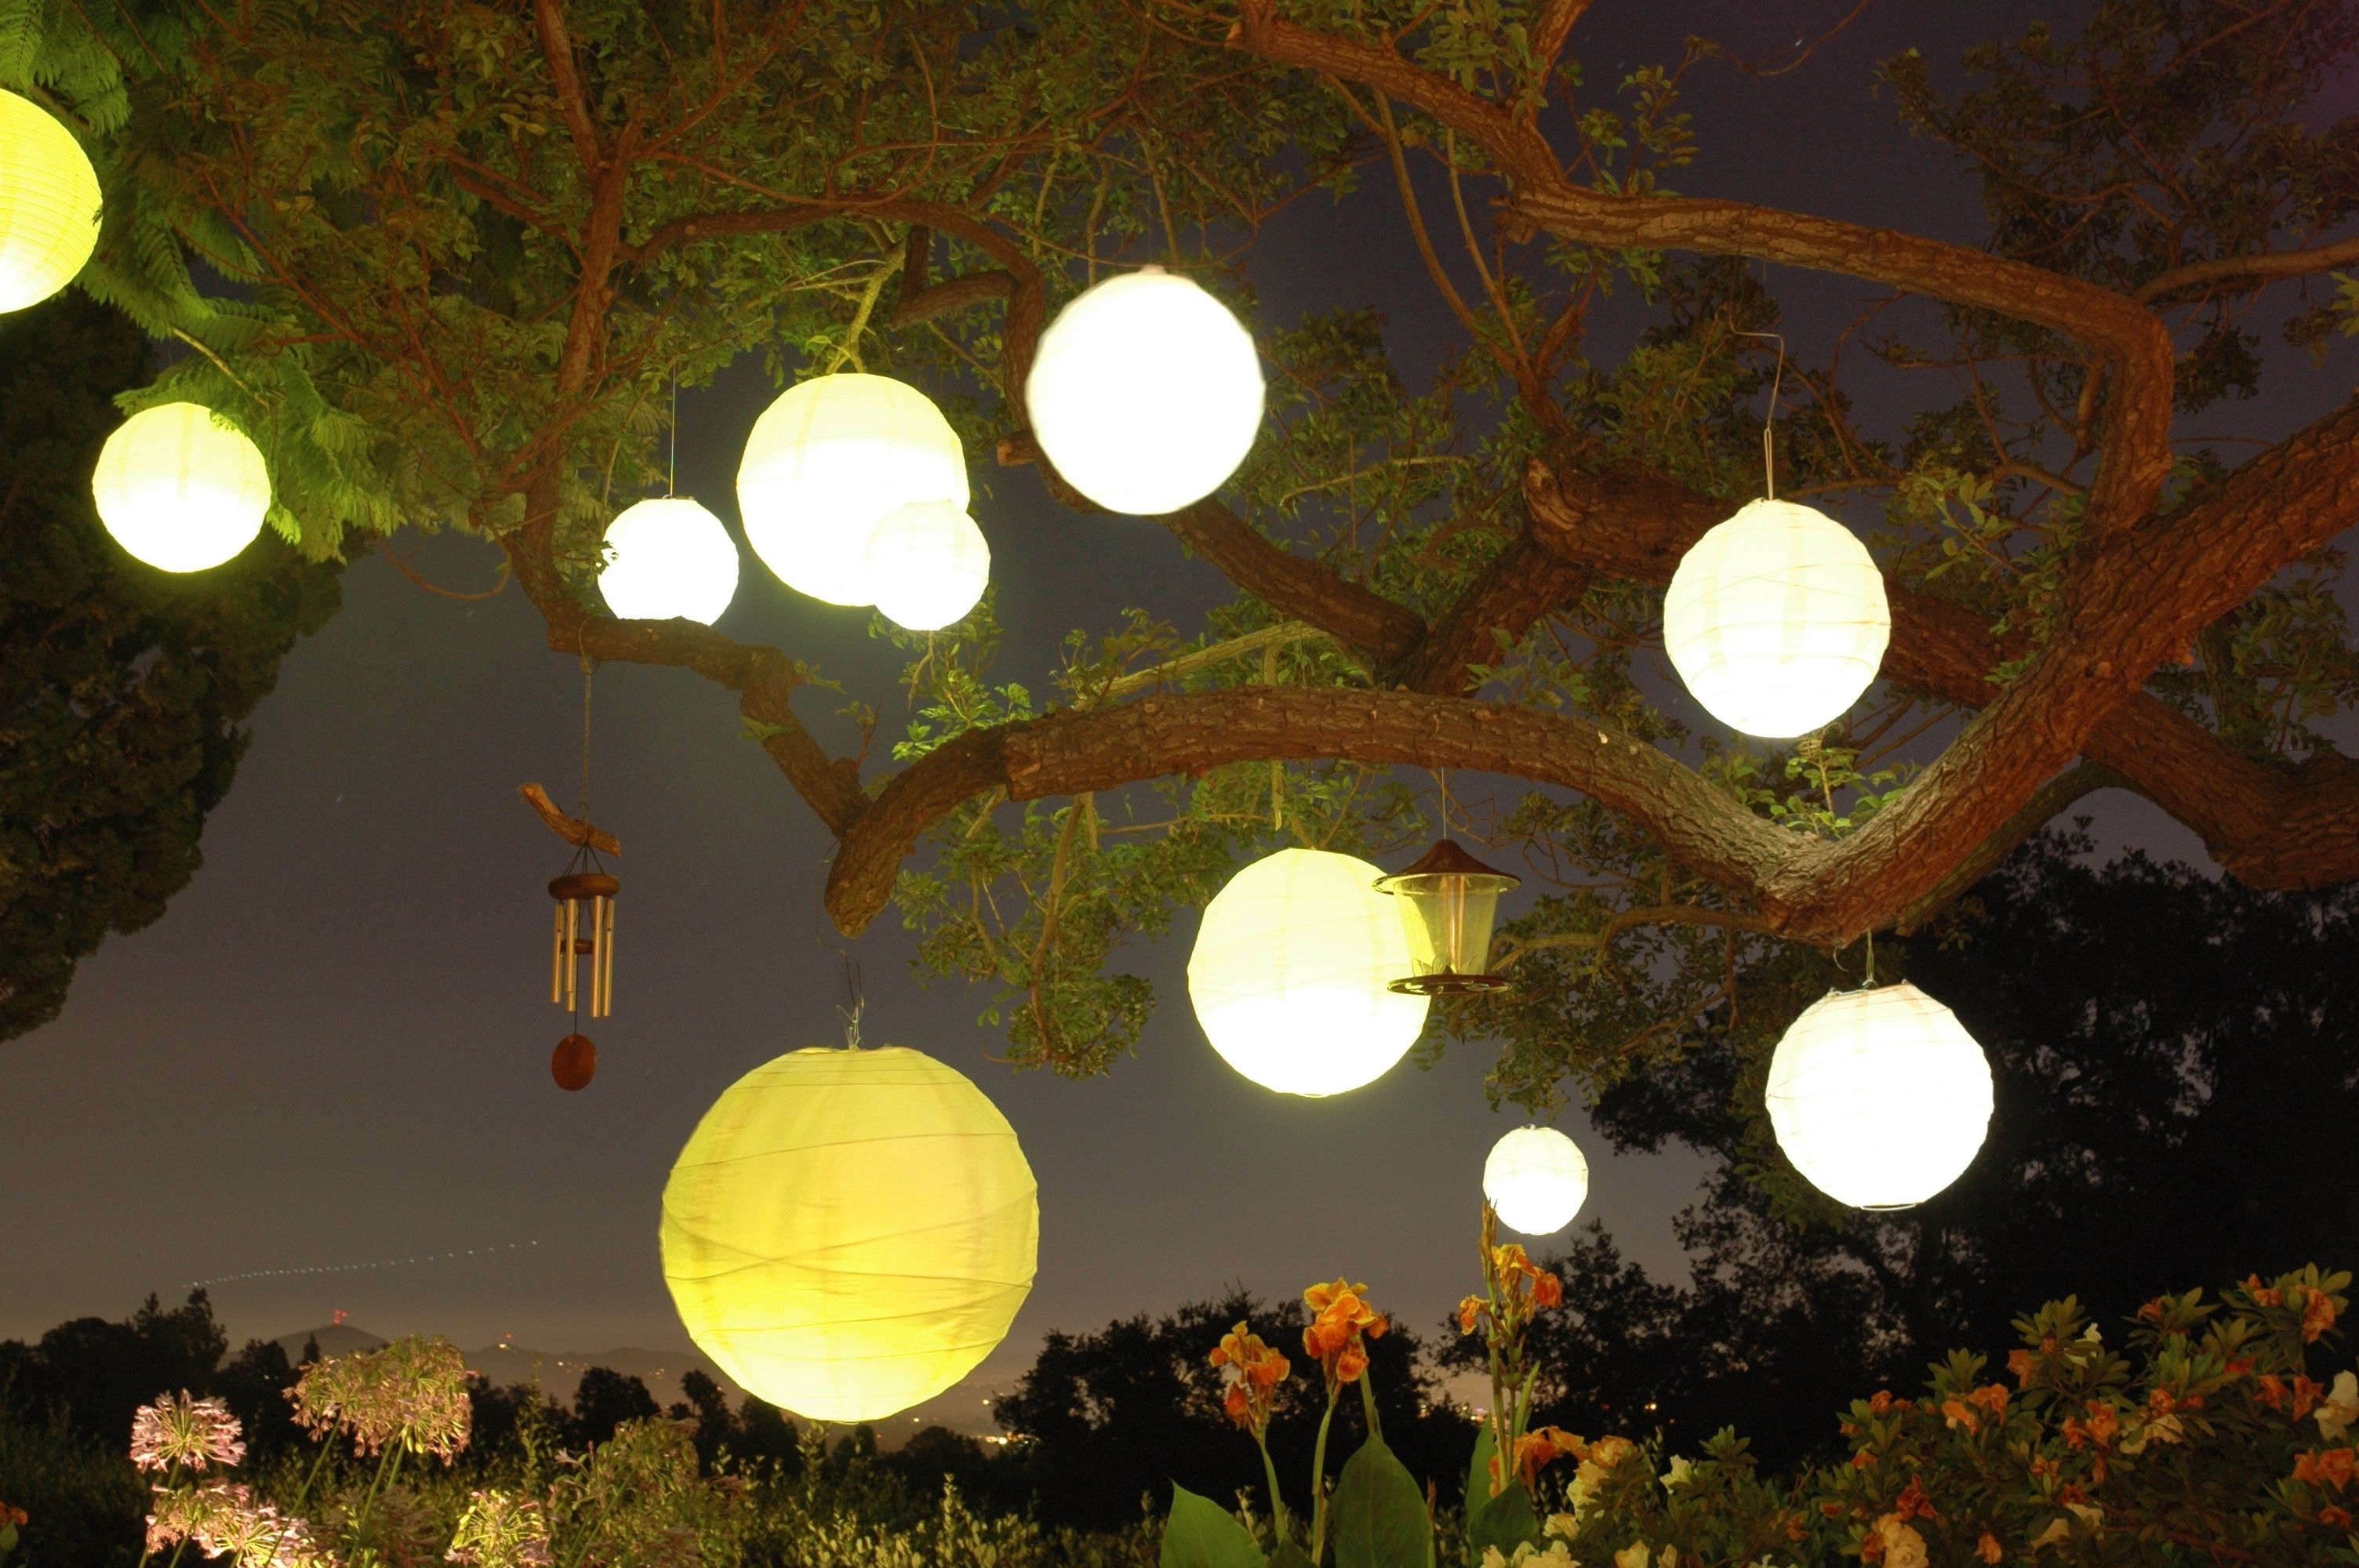 Outdoor Paper Lanterns With Regard To Current Divine Outdoor Lighting Via Paper Lanterns (View 11 of 20)